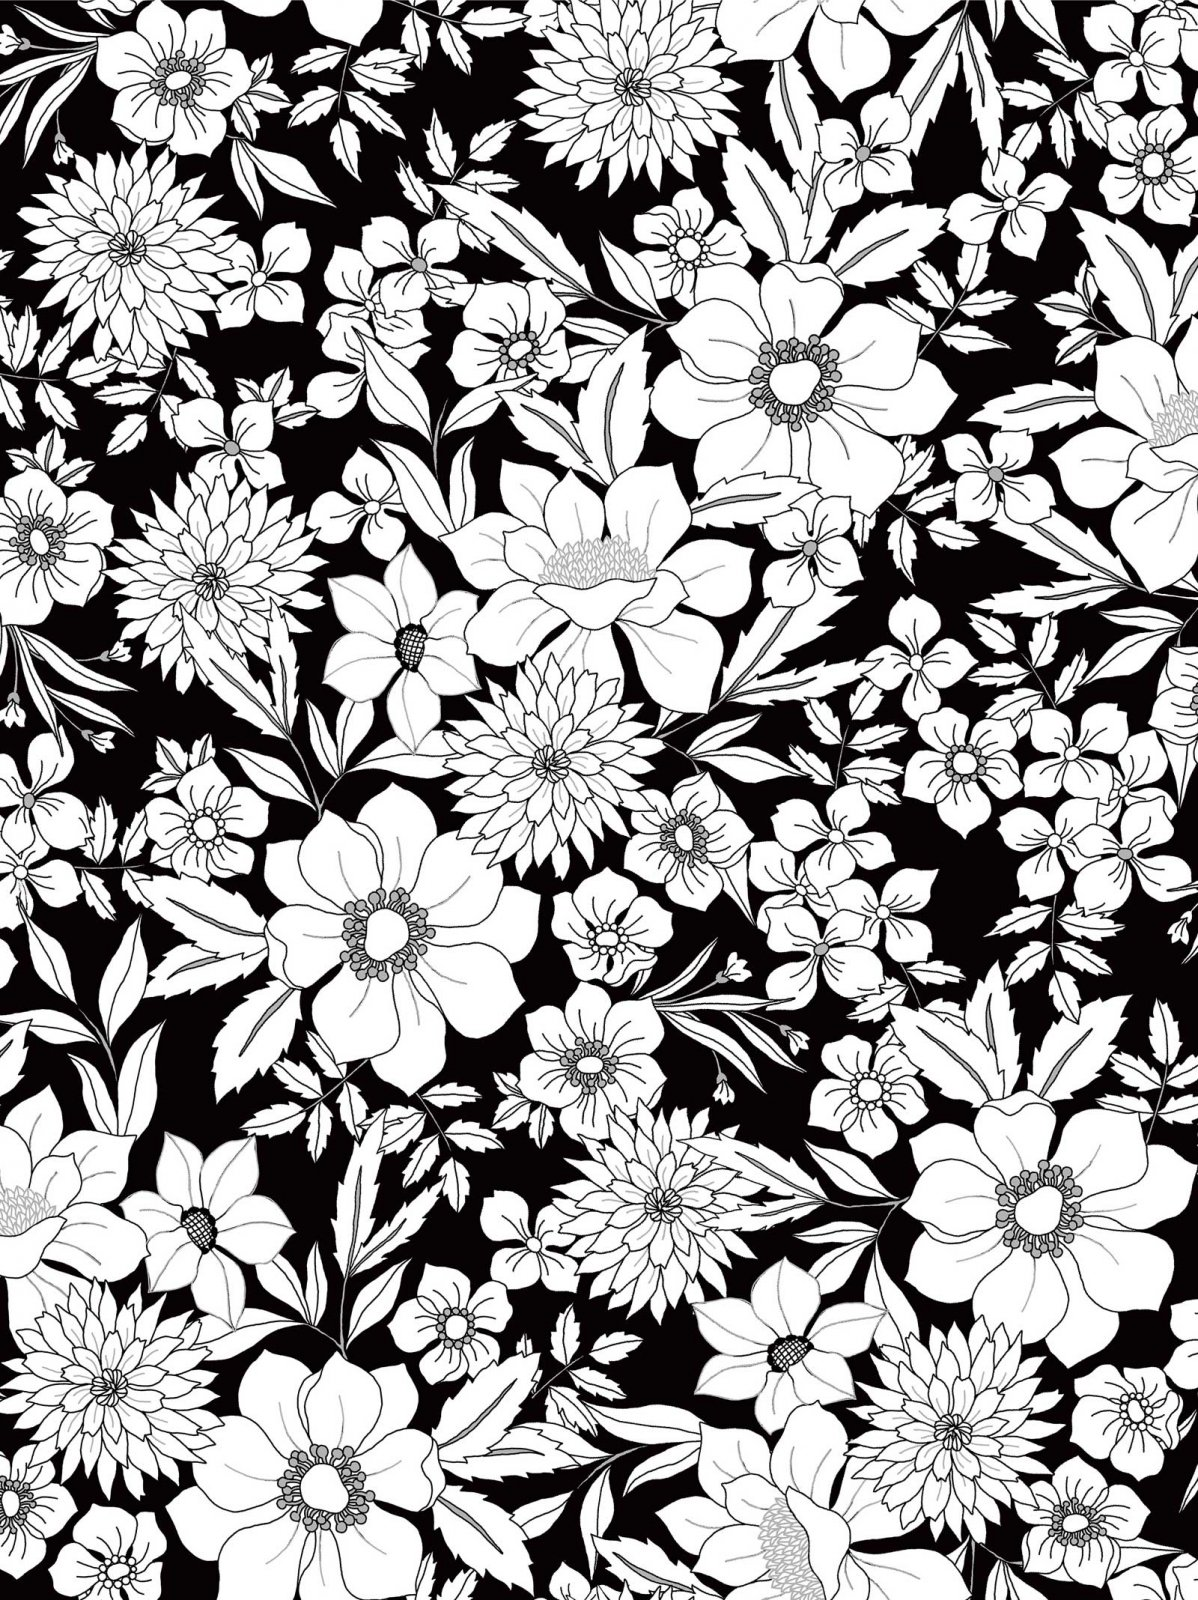 Black Tie Large Floral with Silver Metallic